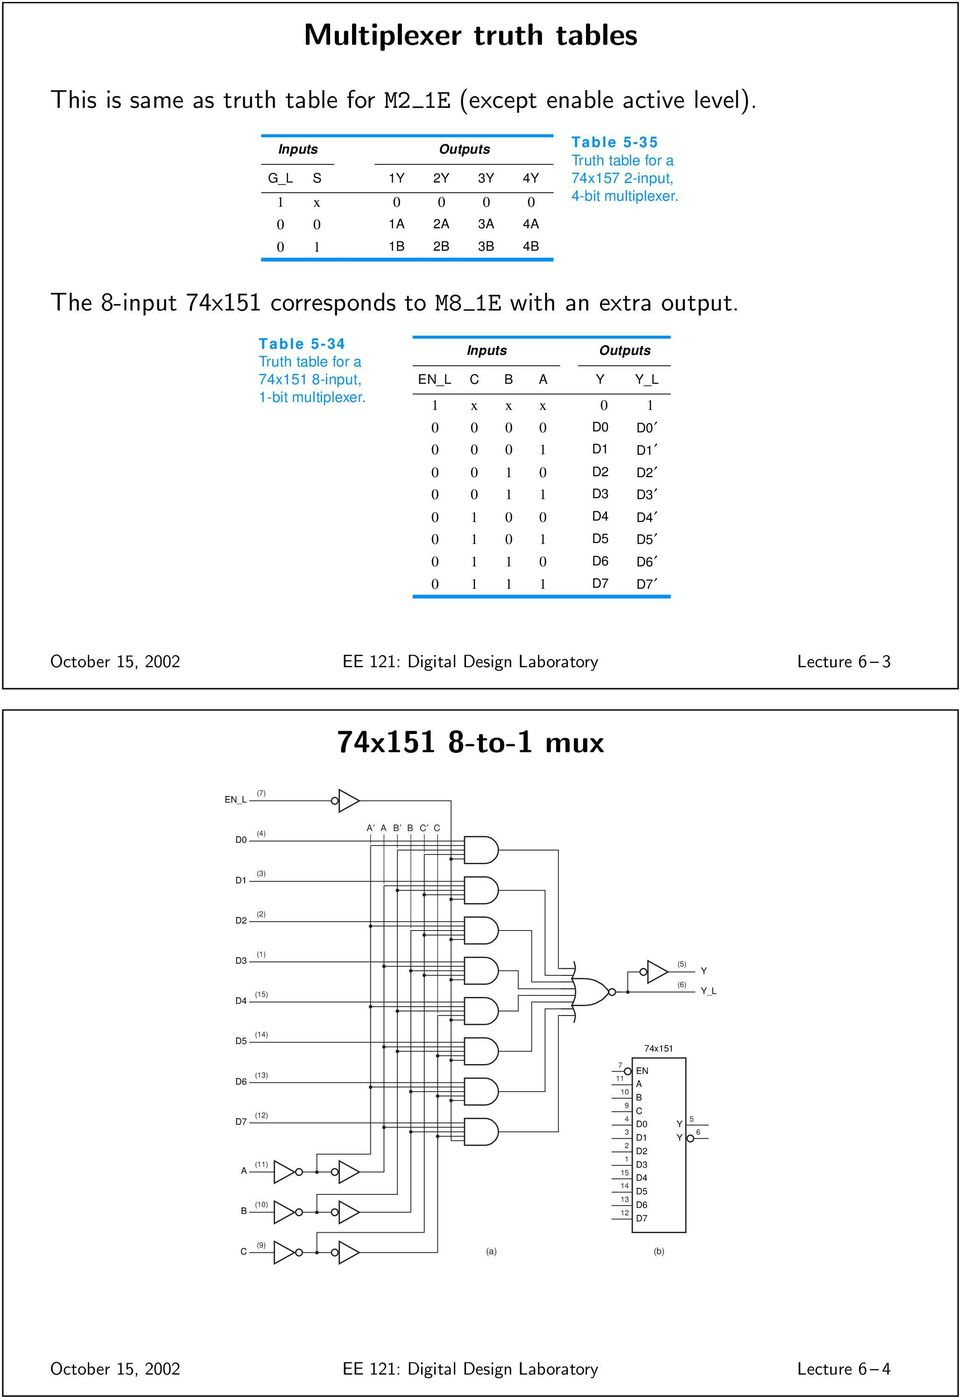 Multiplexers 74x157 Quad 2 To 1 Mux Pdf General Block Diagram Of Multiplexer Tale Truth For A X 8 Input It